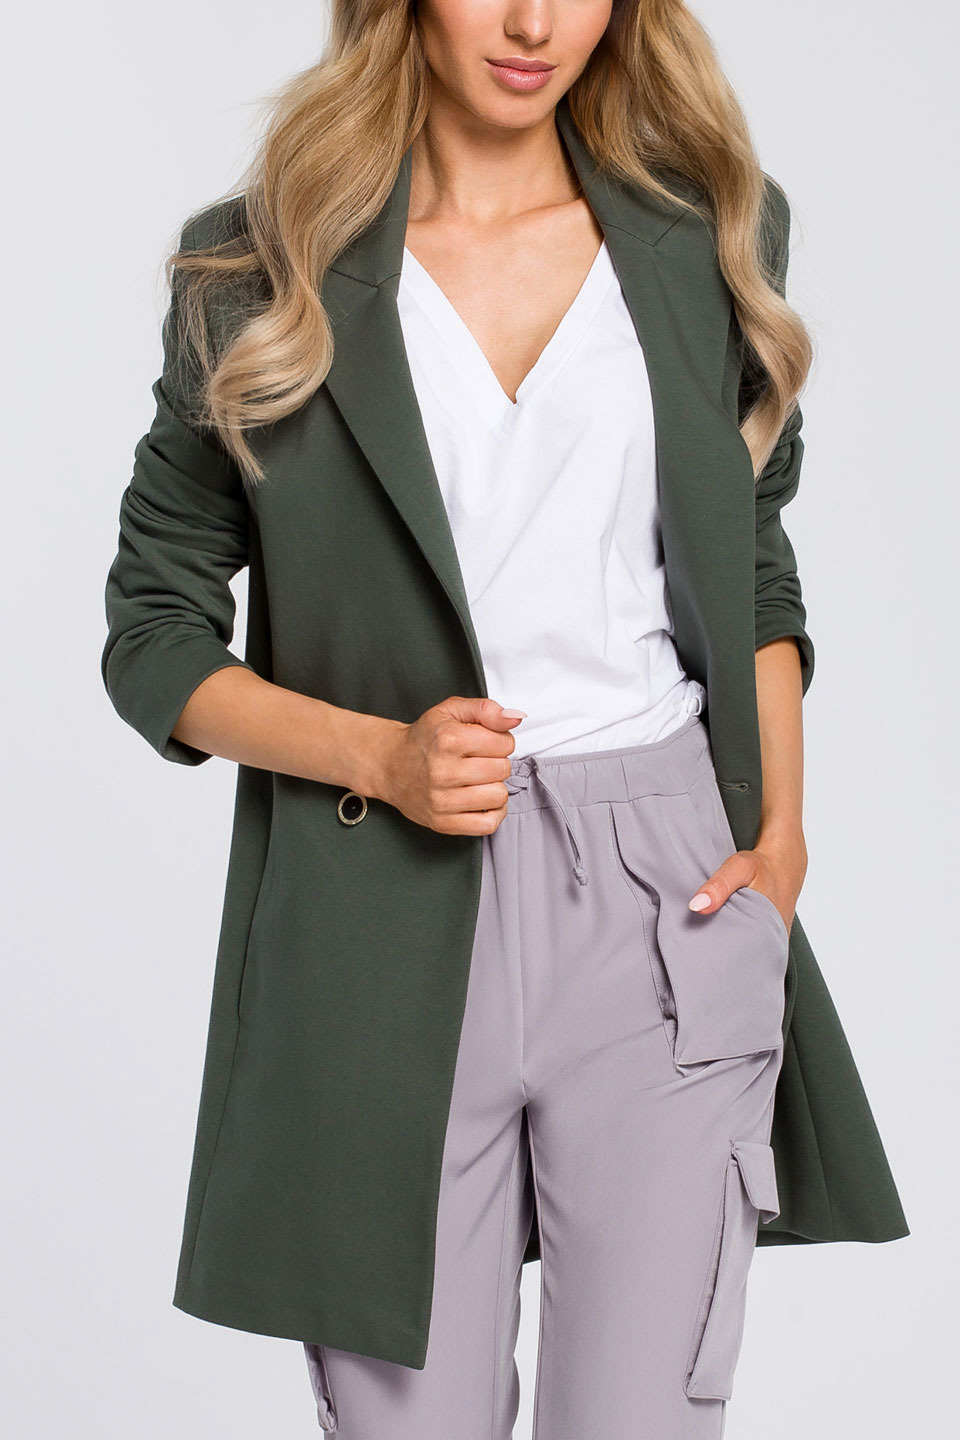 Missy Jacket in Military Green